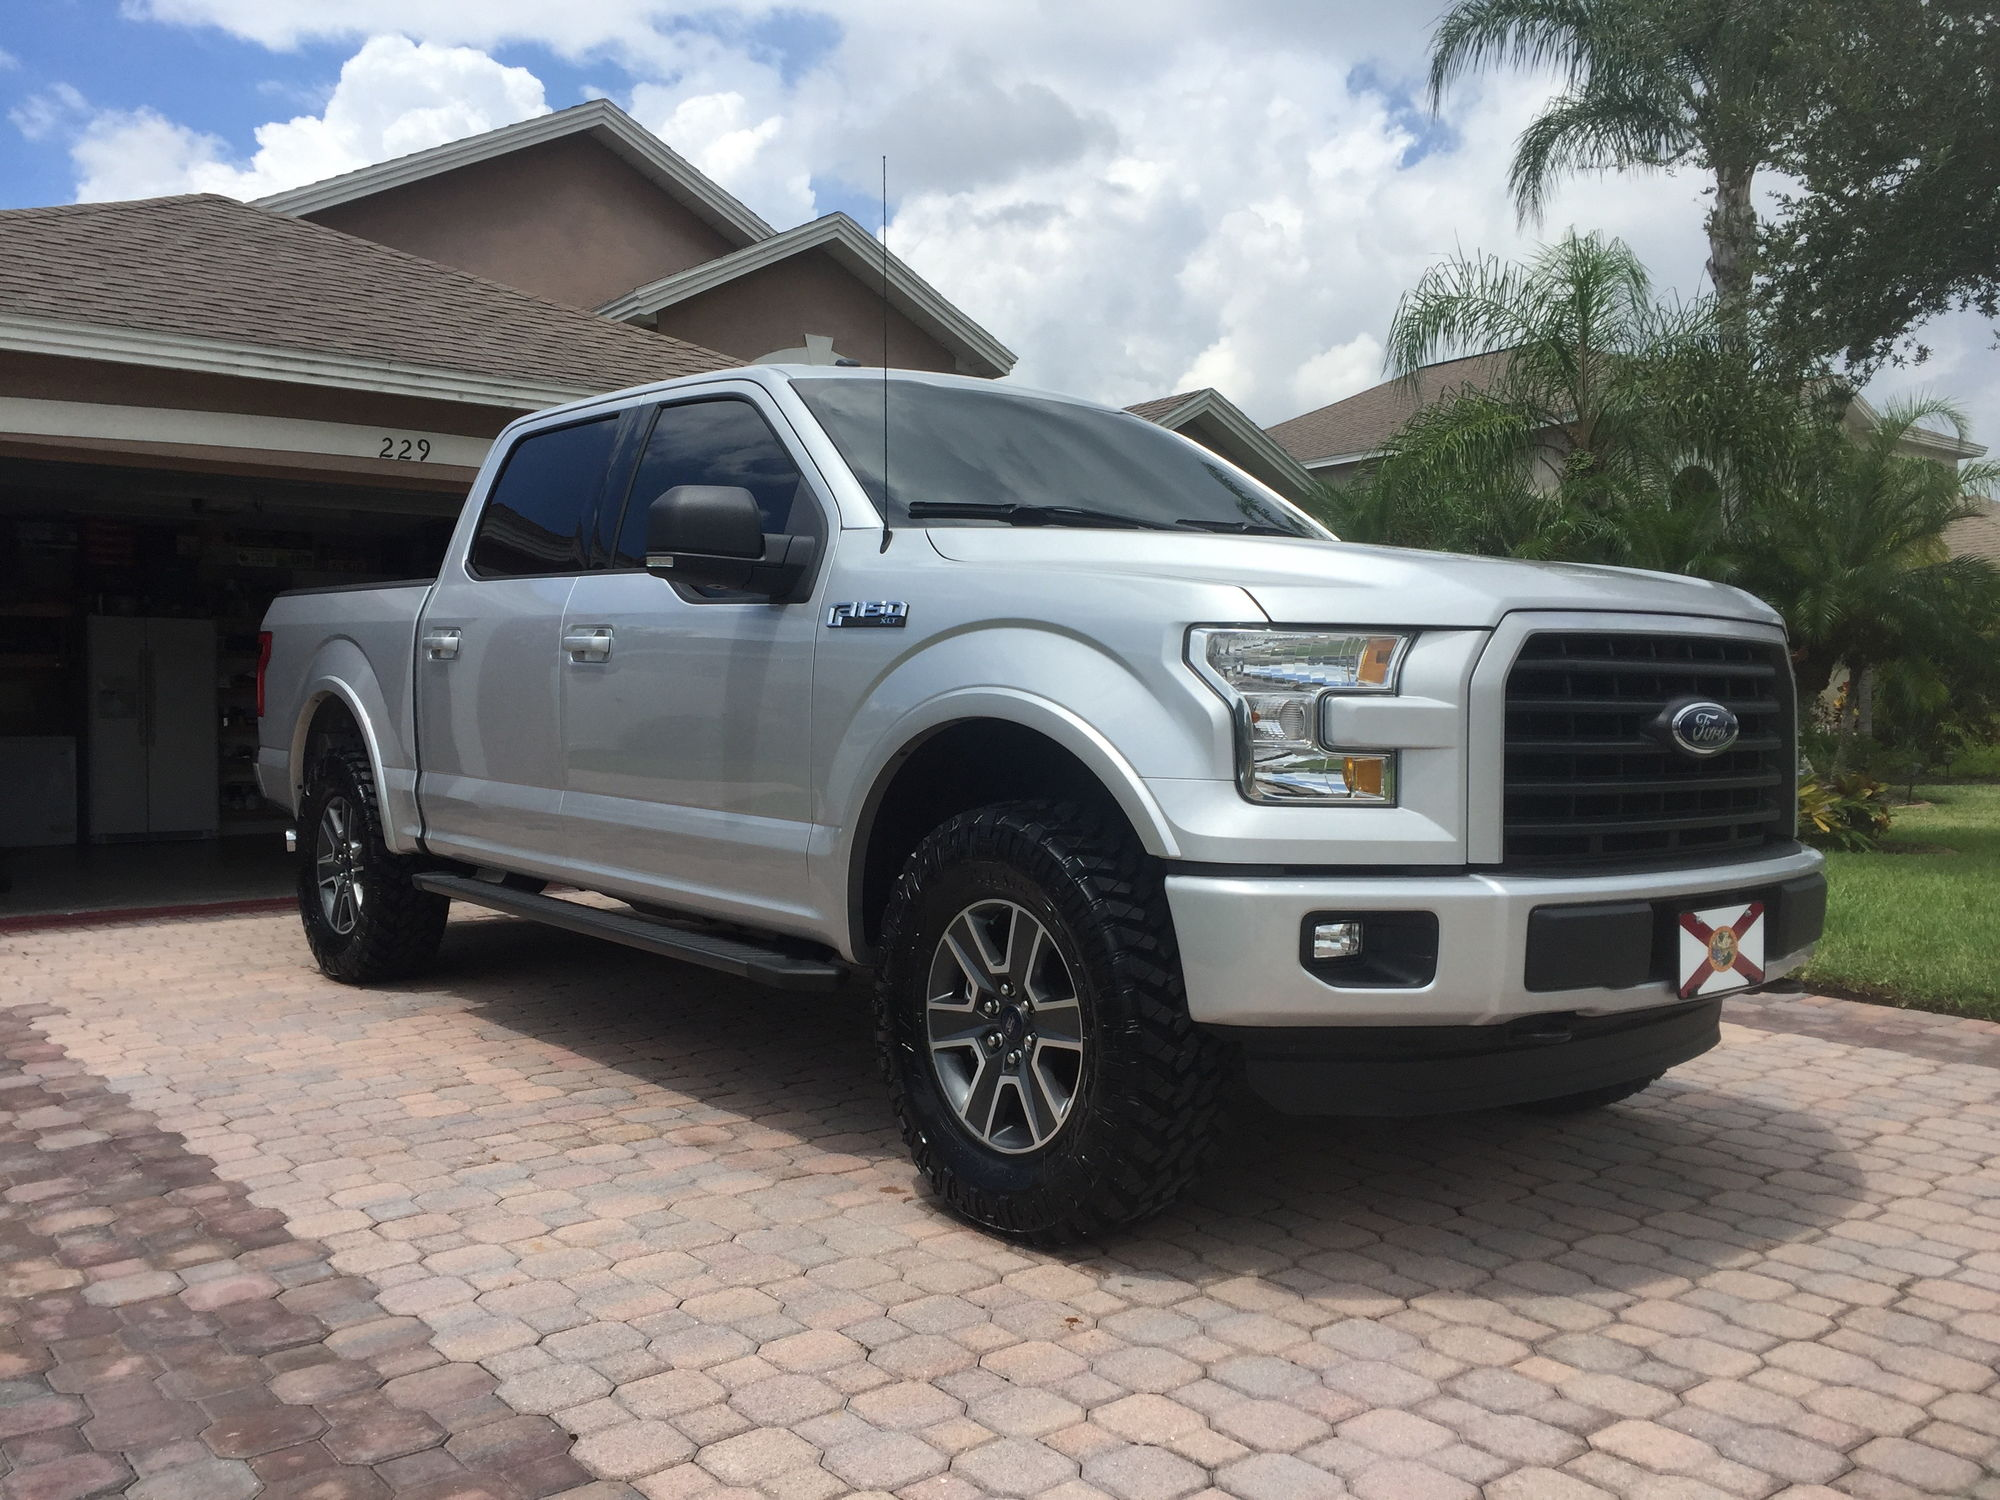 F150 Factory Rims >> Show me you Leveled trucks with OEM rims! - Page 59 - Ford F150 Forum - Community of Ford Truck Fans